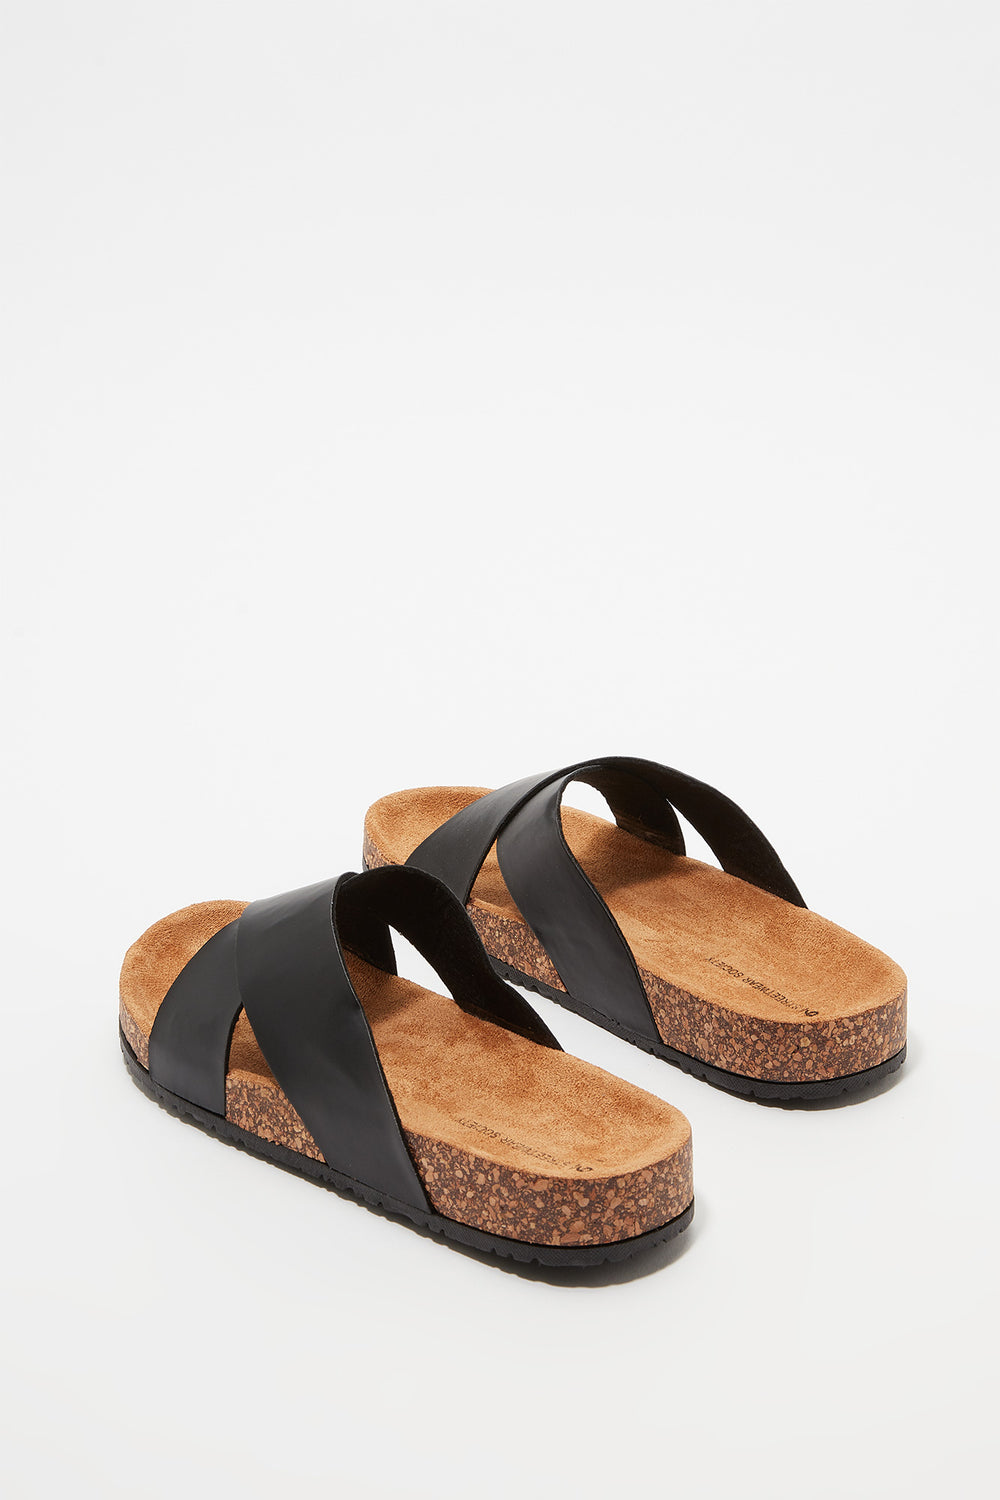 Crisscross Cork Slip-On Sandal Black